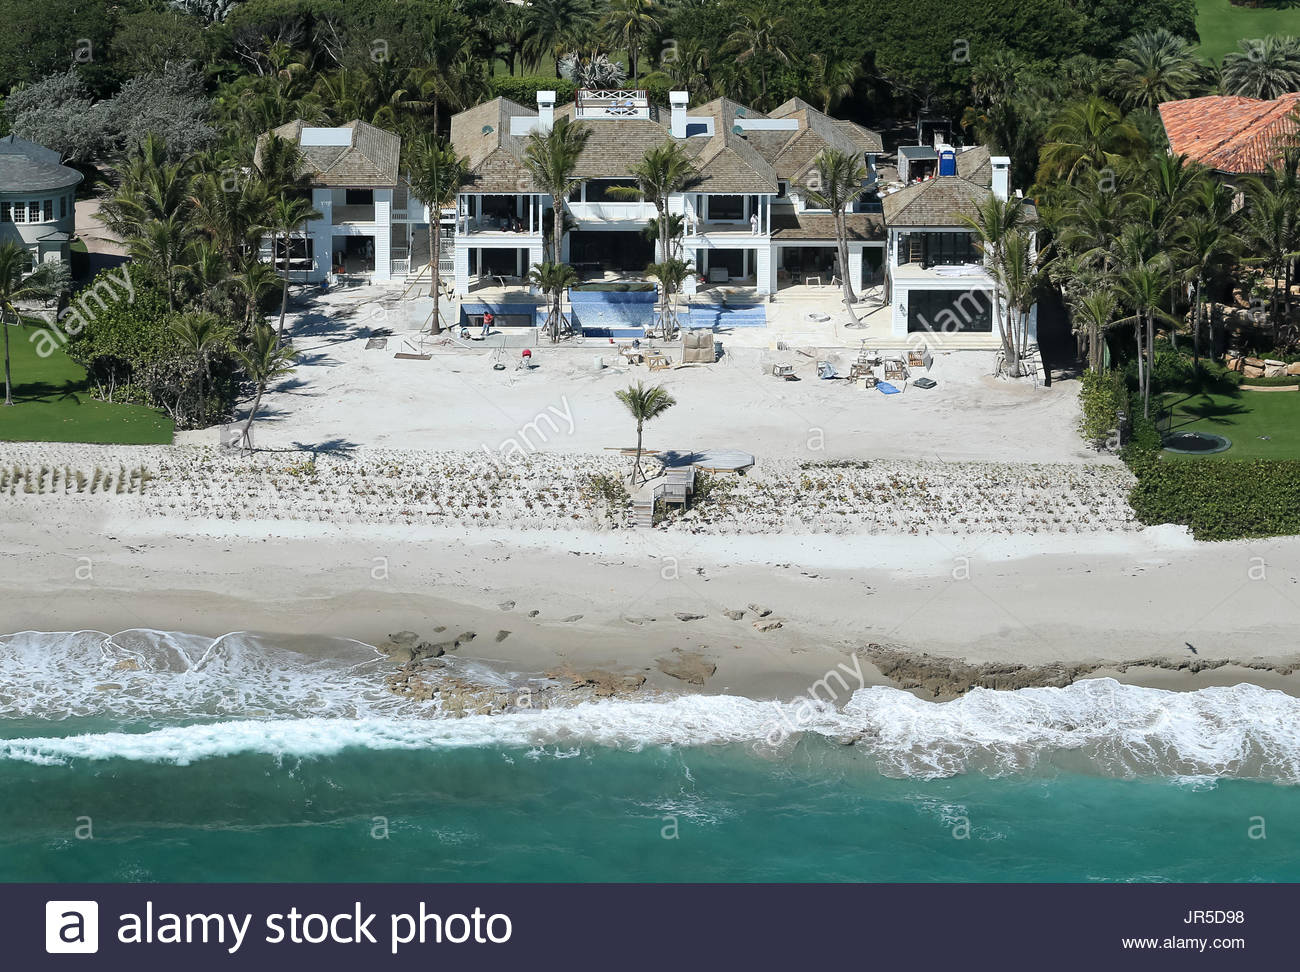 Tiger Woods And Elin Nordegrens House Stock Photos & Tiger Woods And ...